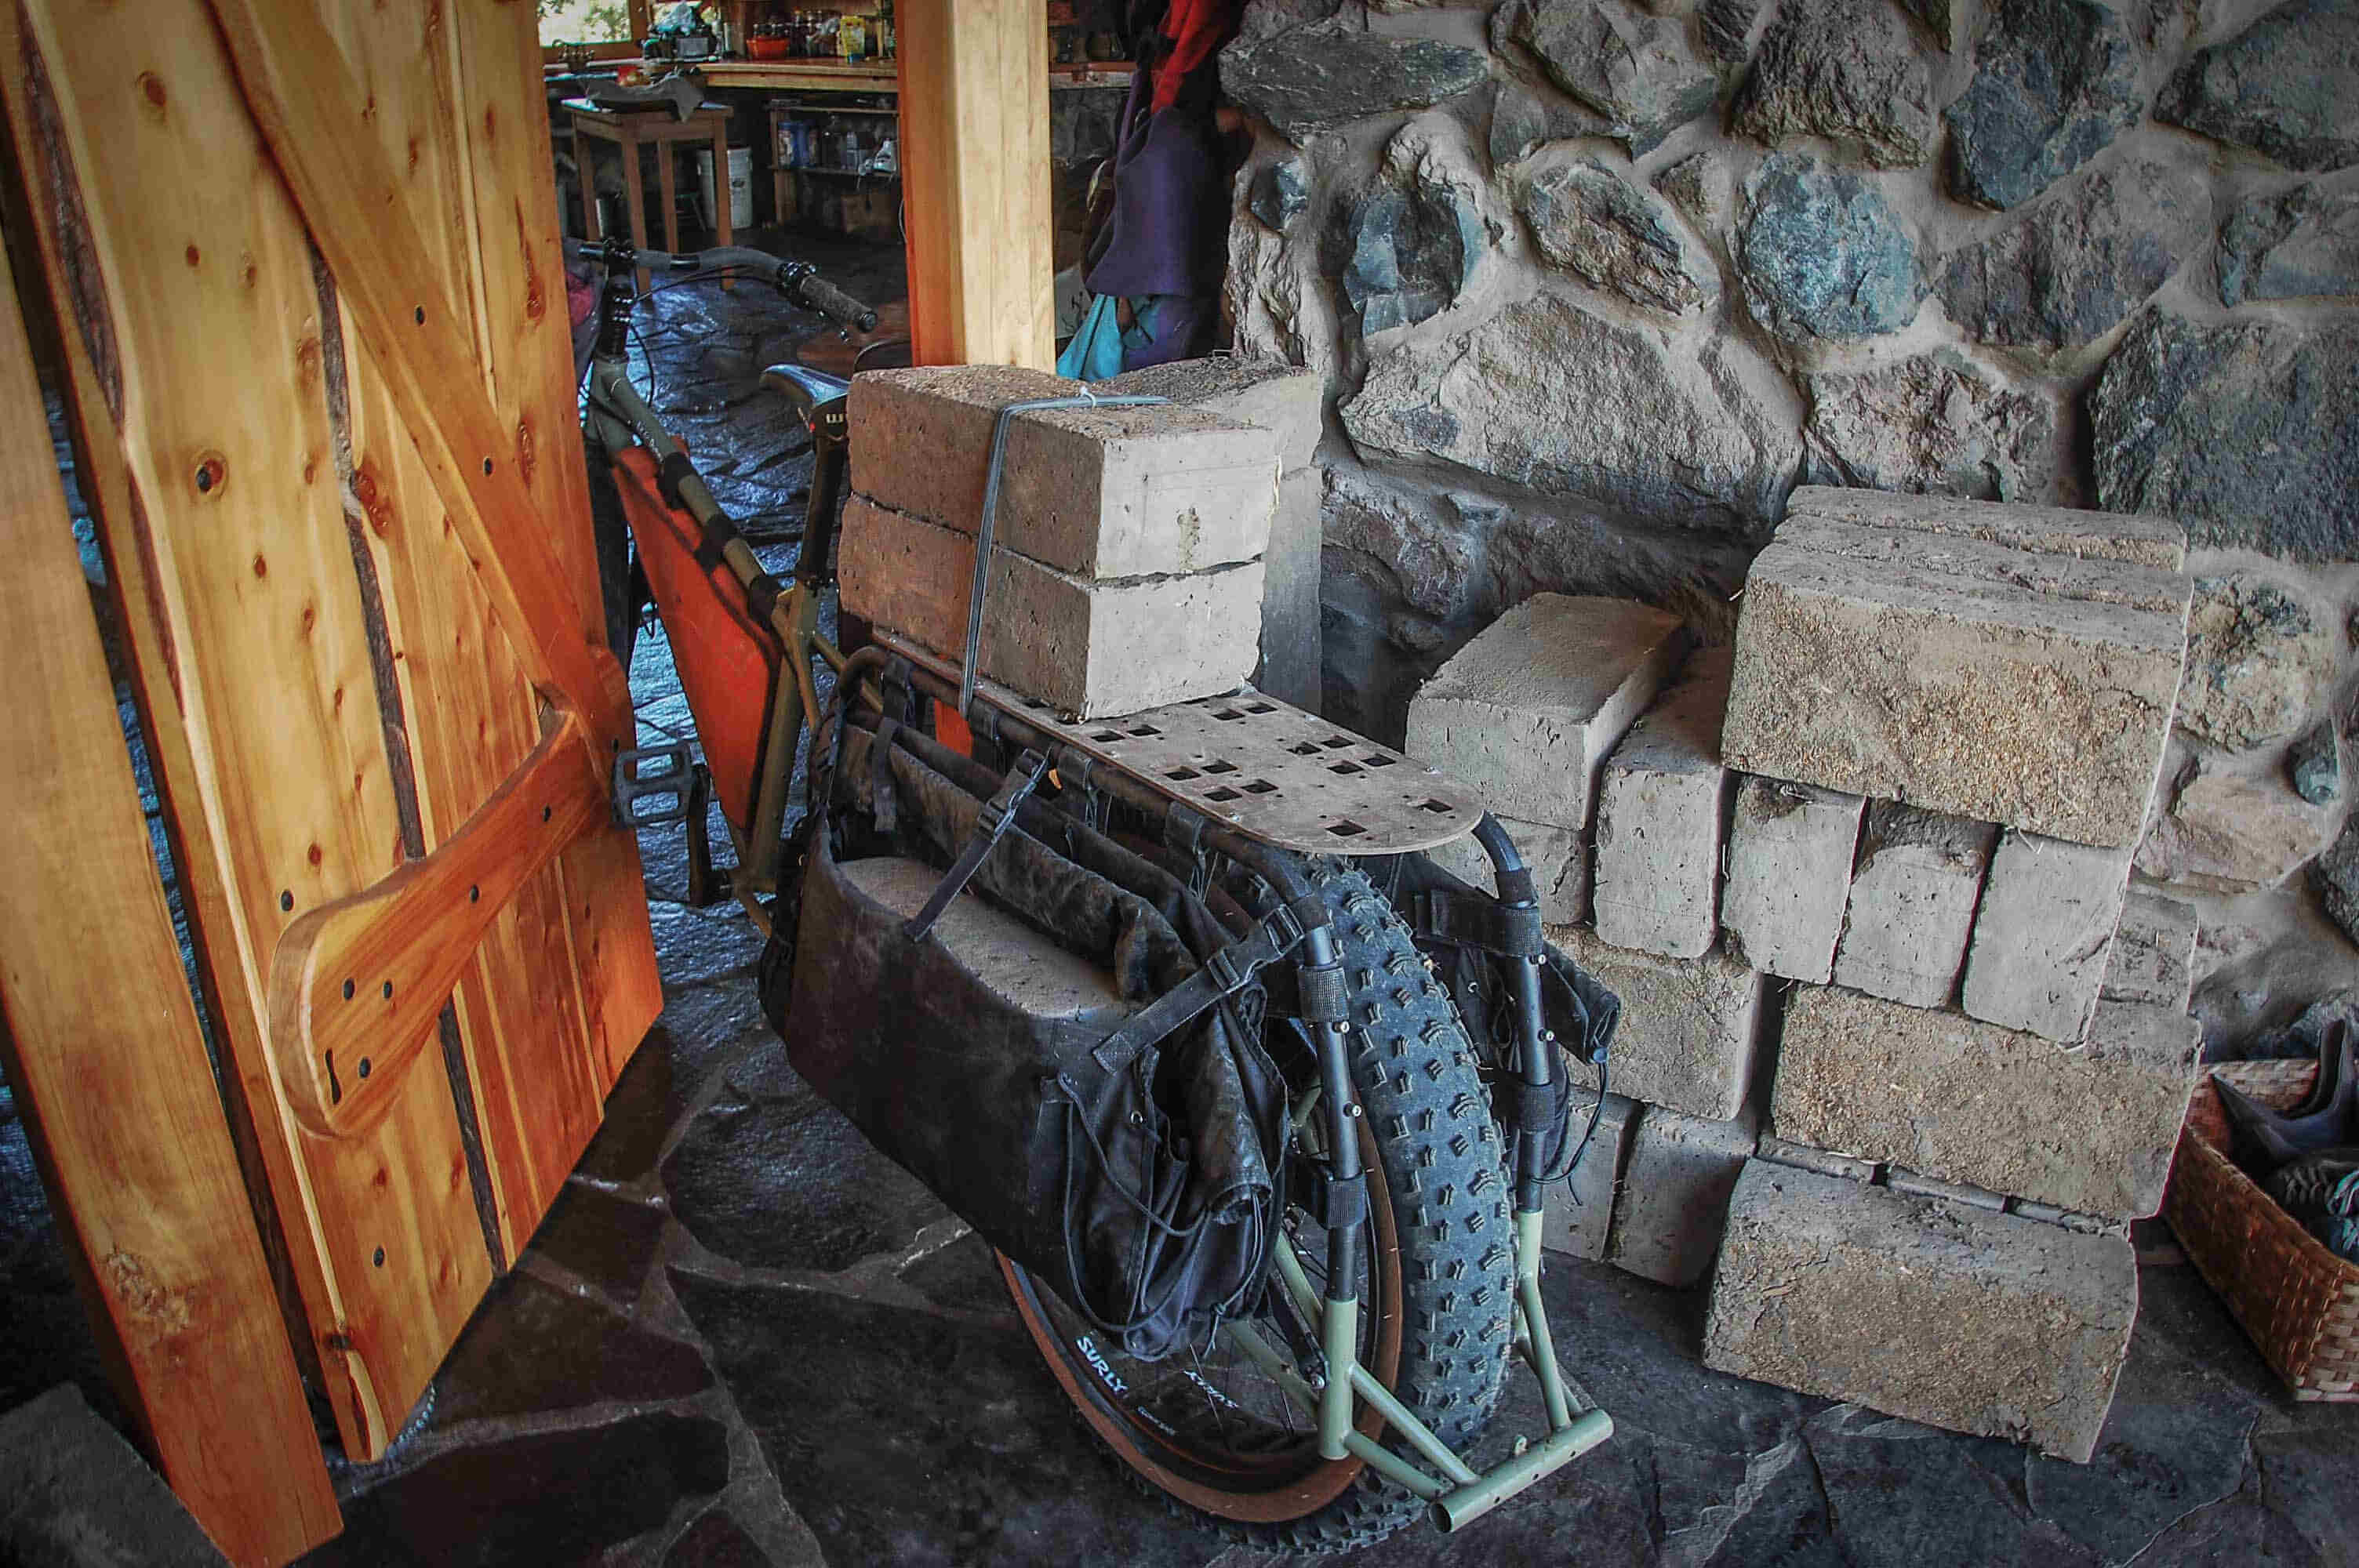 Left rear view of a Surly Big Fat Dummy bike with cement blocks on the rear rack, in the doorway of a stone building